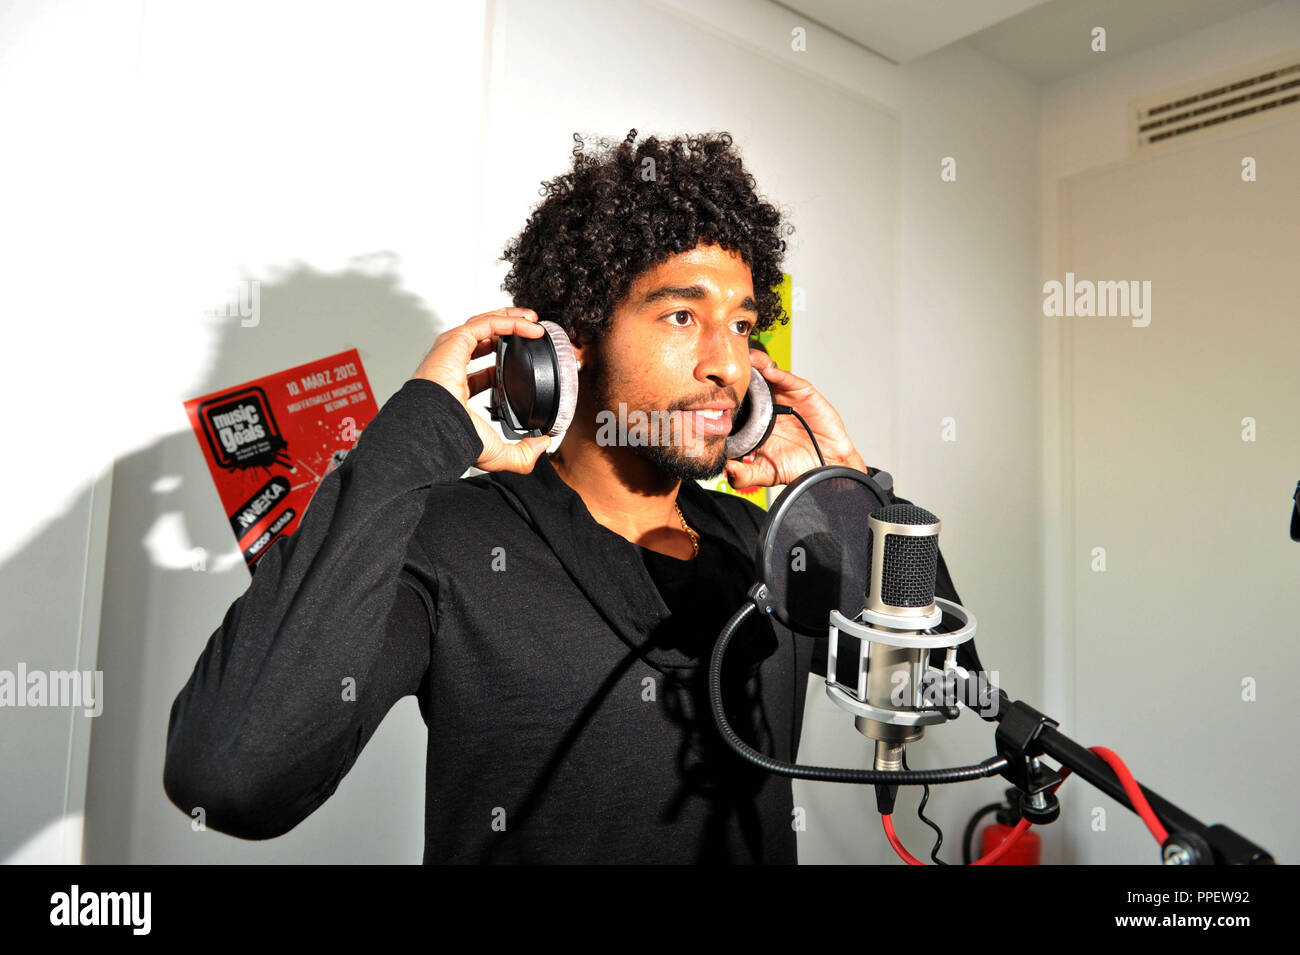 The Brazilian professional football player Dante from Bayern Munich advertises in a broadcast of Radio egoFM the concert project 'Music for Goals', which turns against racism, xenophobia and violence in society. - Stock Image